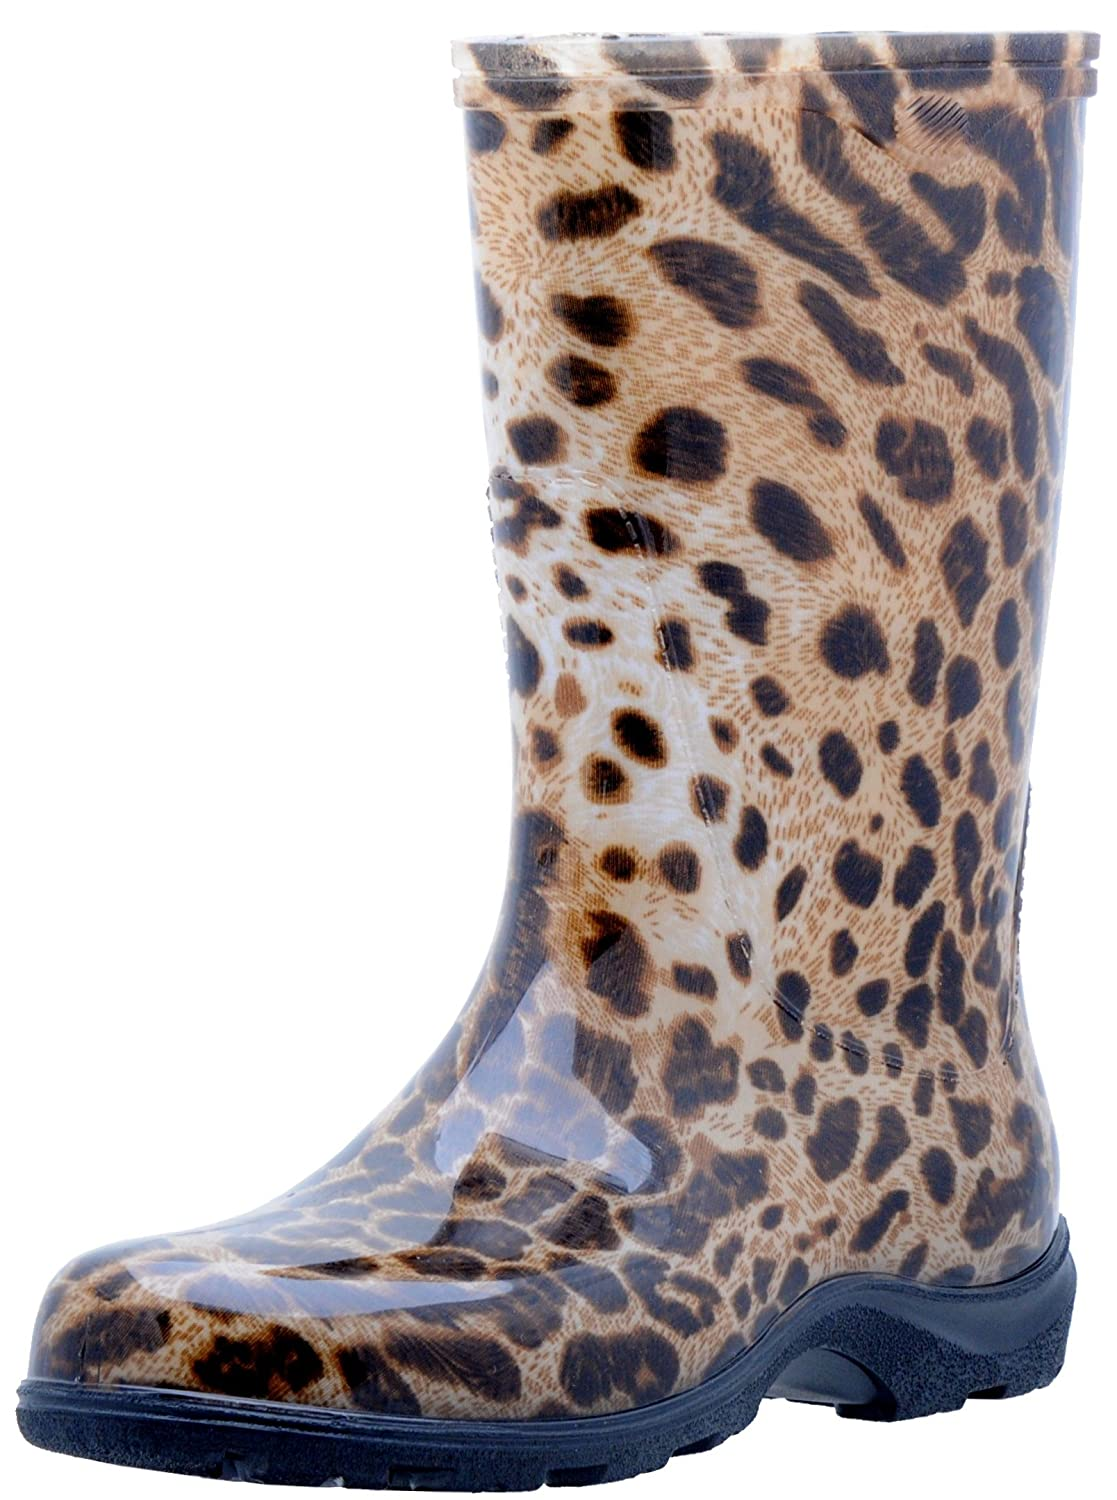 Leopard Print Sloggers 5018SSBL08 Spring Surprise Waterproof Boot, 8, bluee